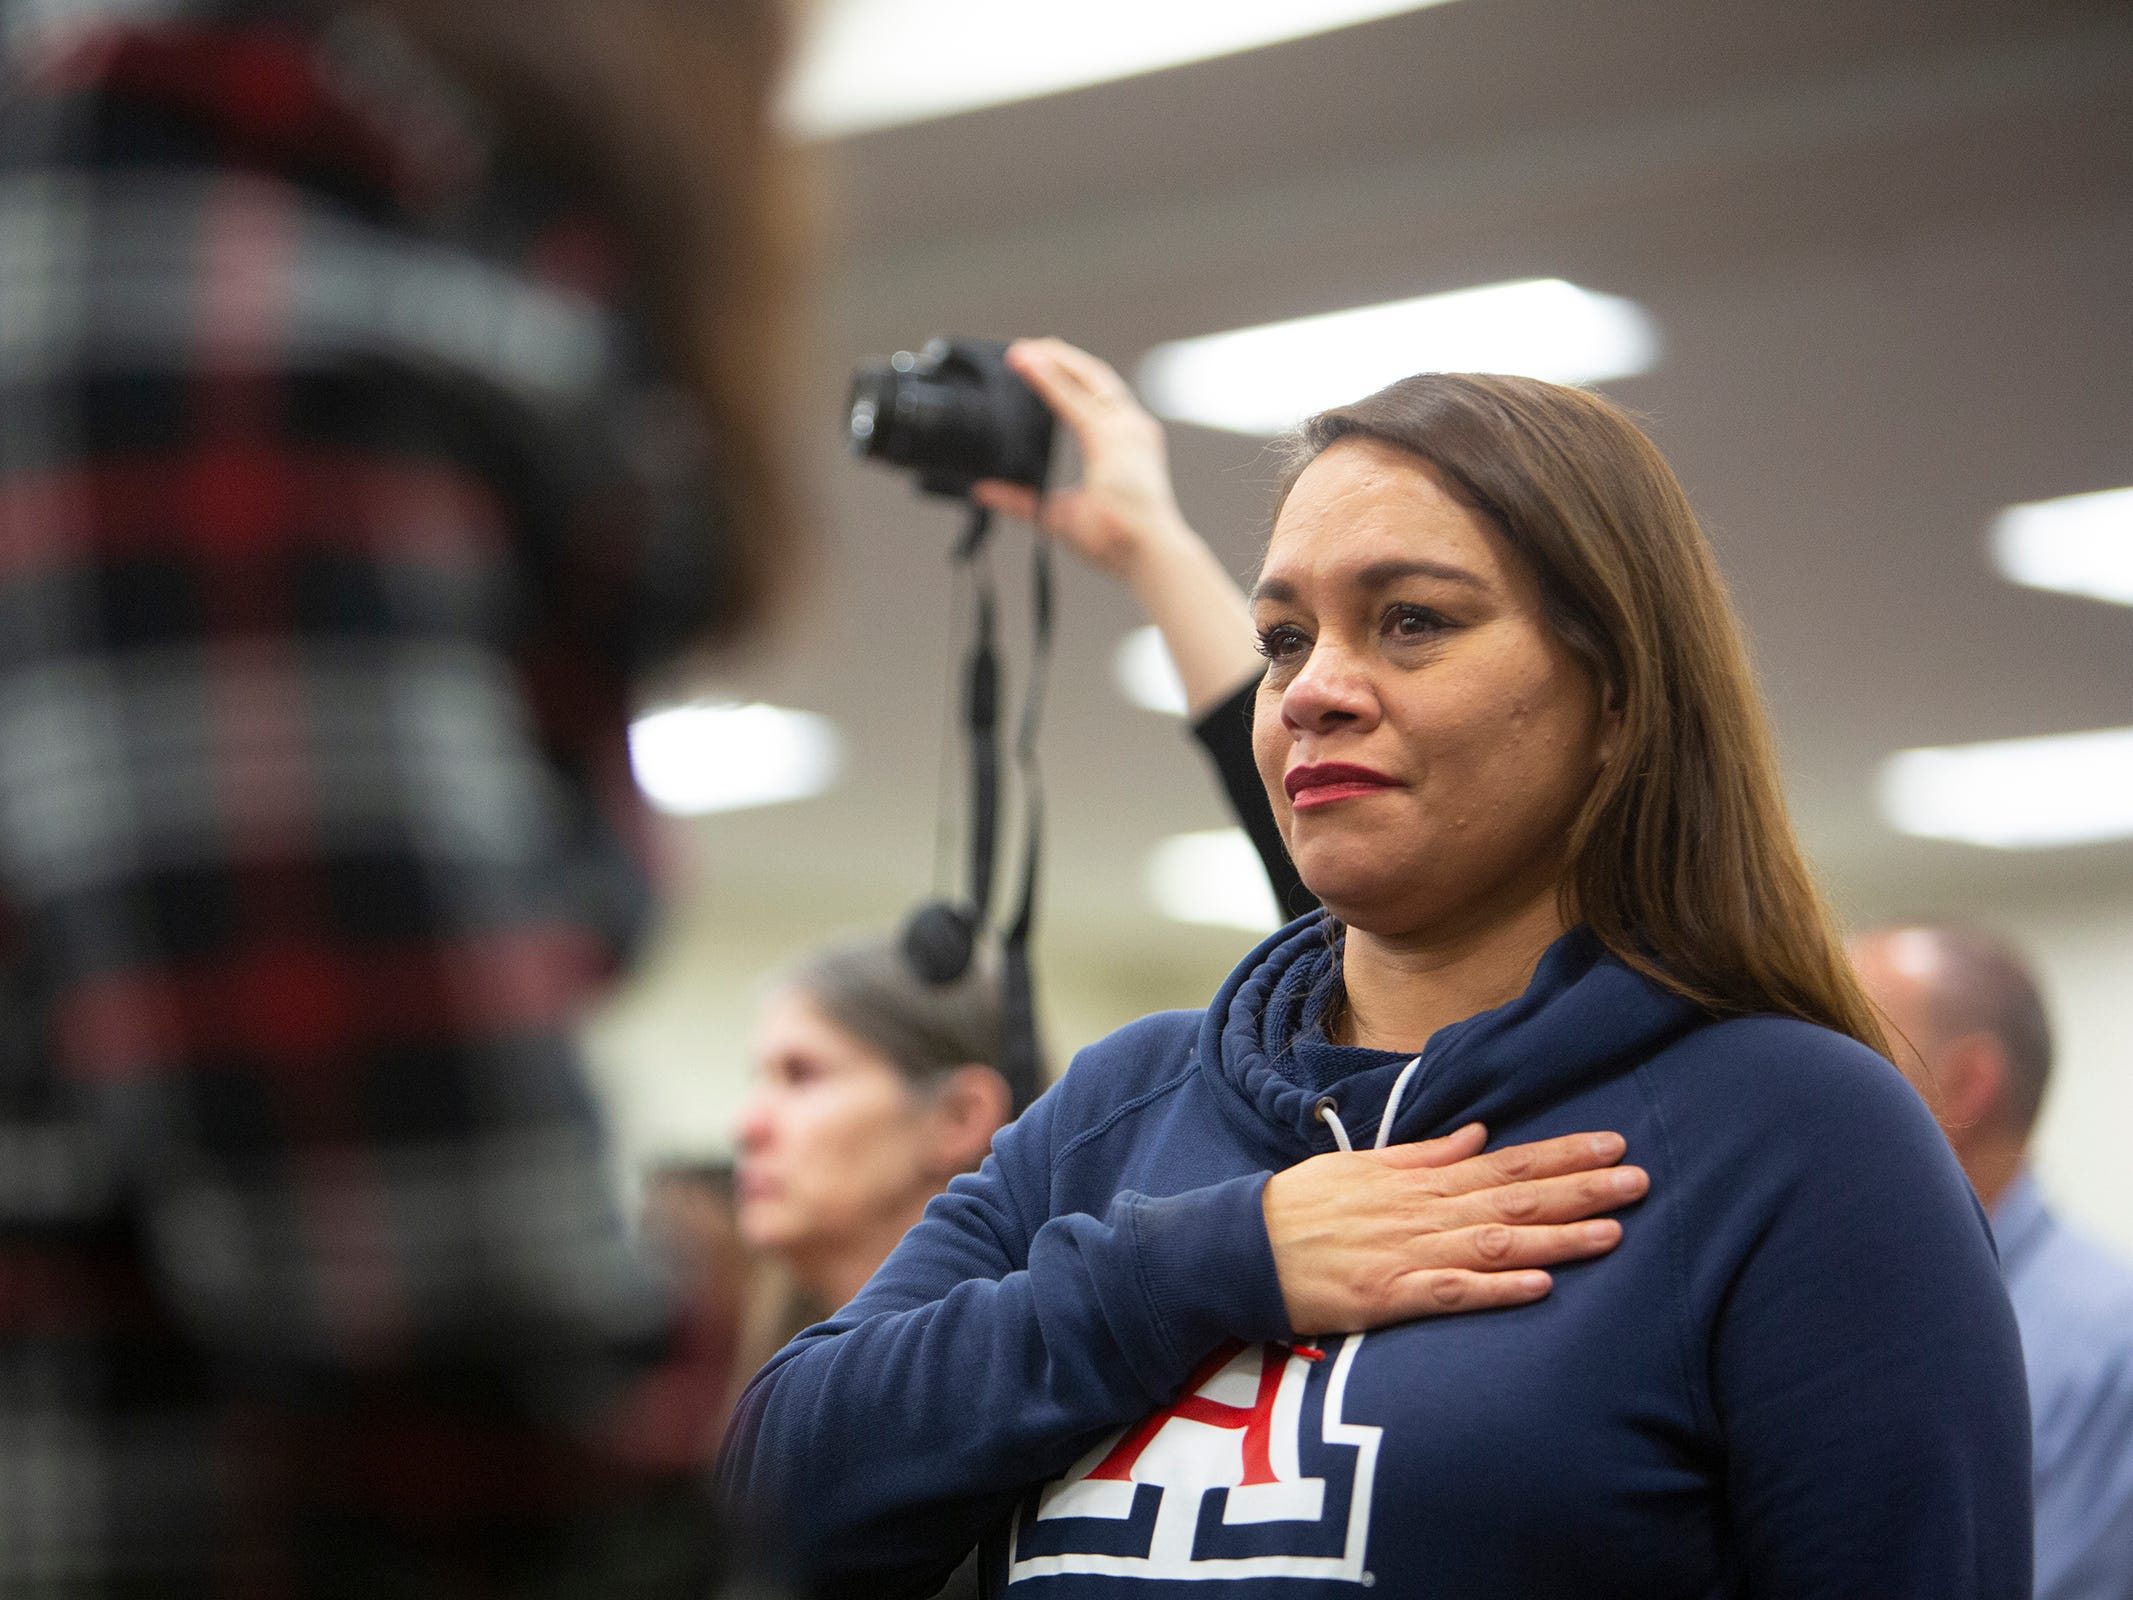 Irene Corella places her hand on her chest for the national anthem during the deployment ceremony for the 253rd Engineer Battalion at Papago Park Military Reservation on Sunday, Feb. 24, 2019.